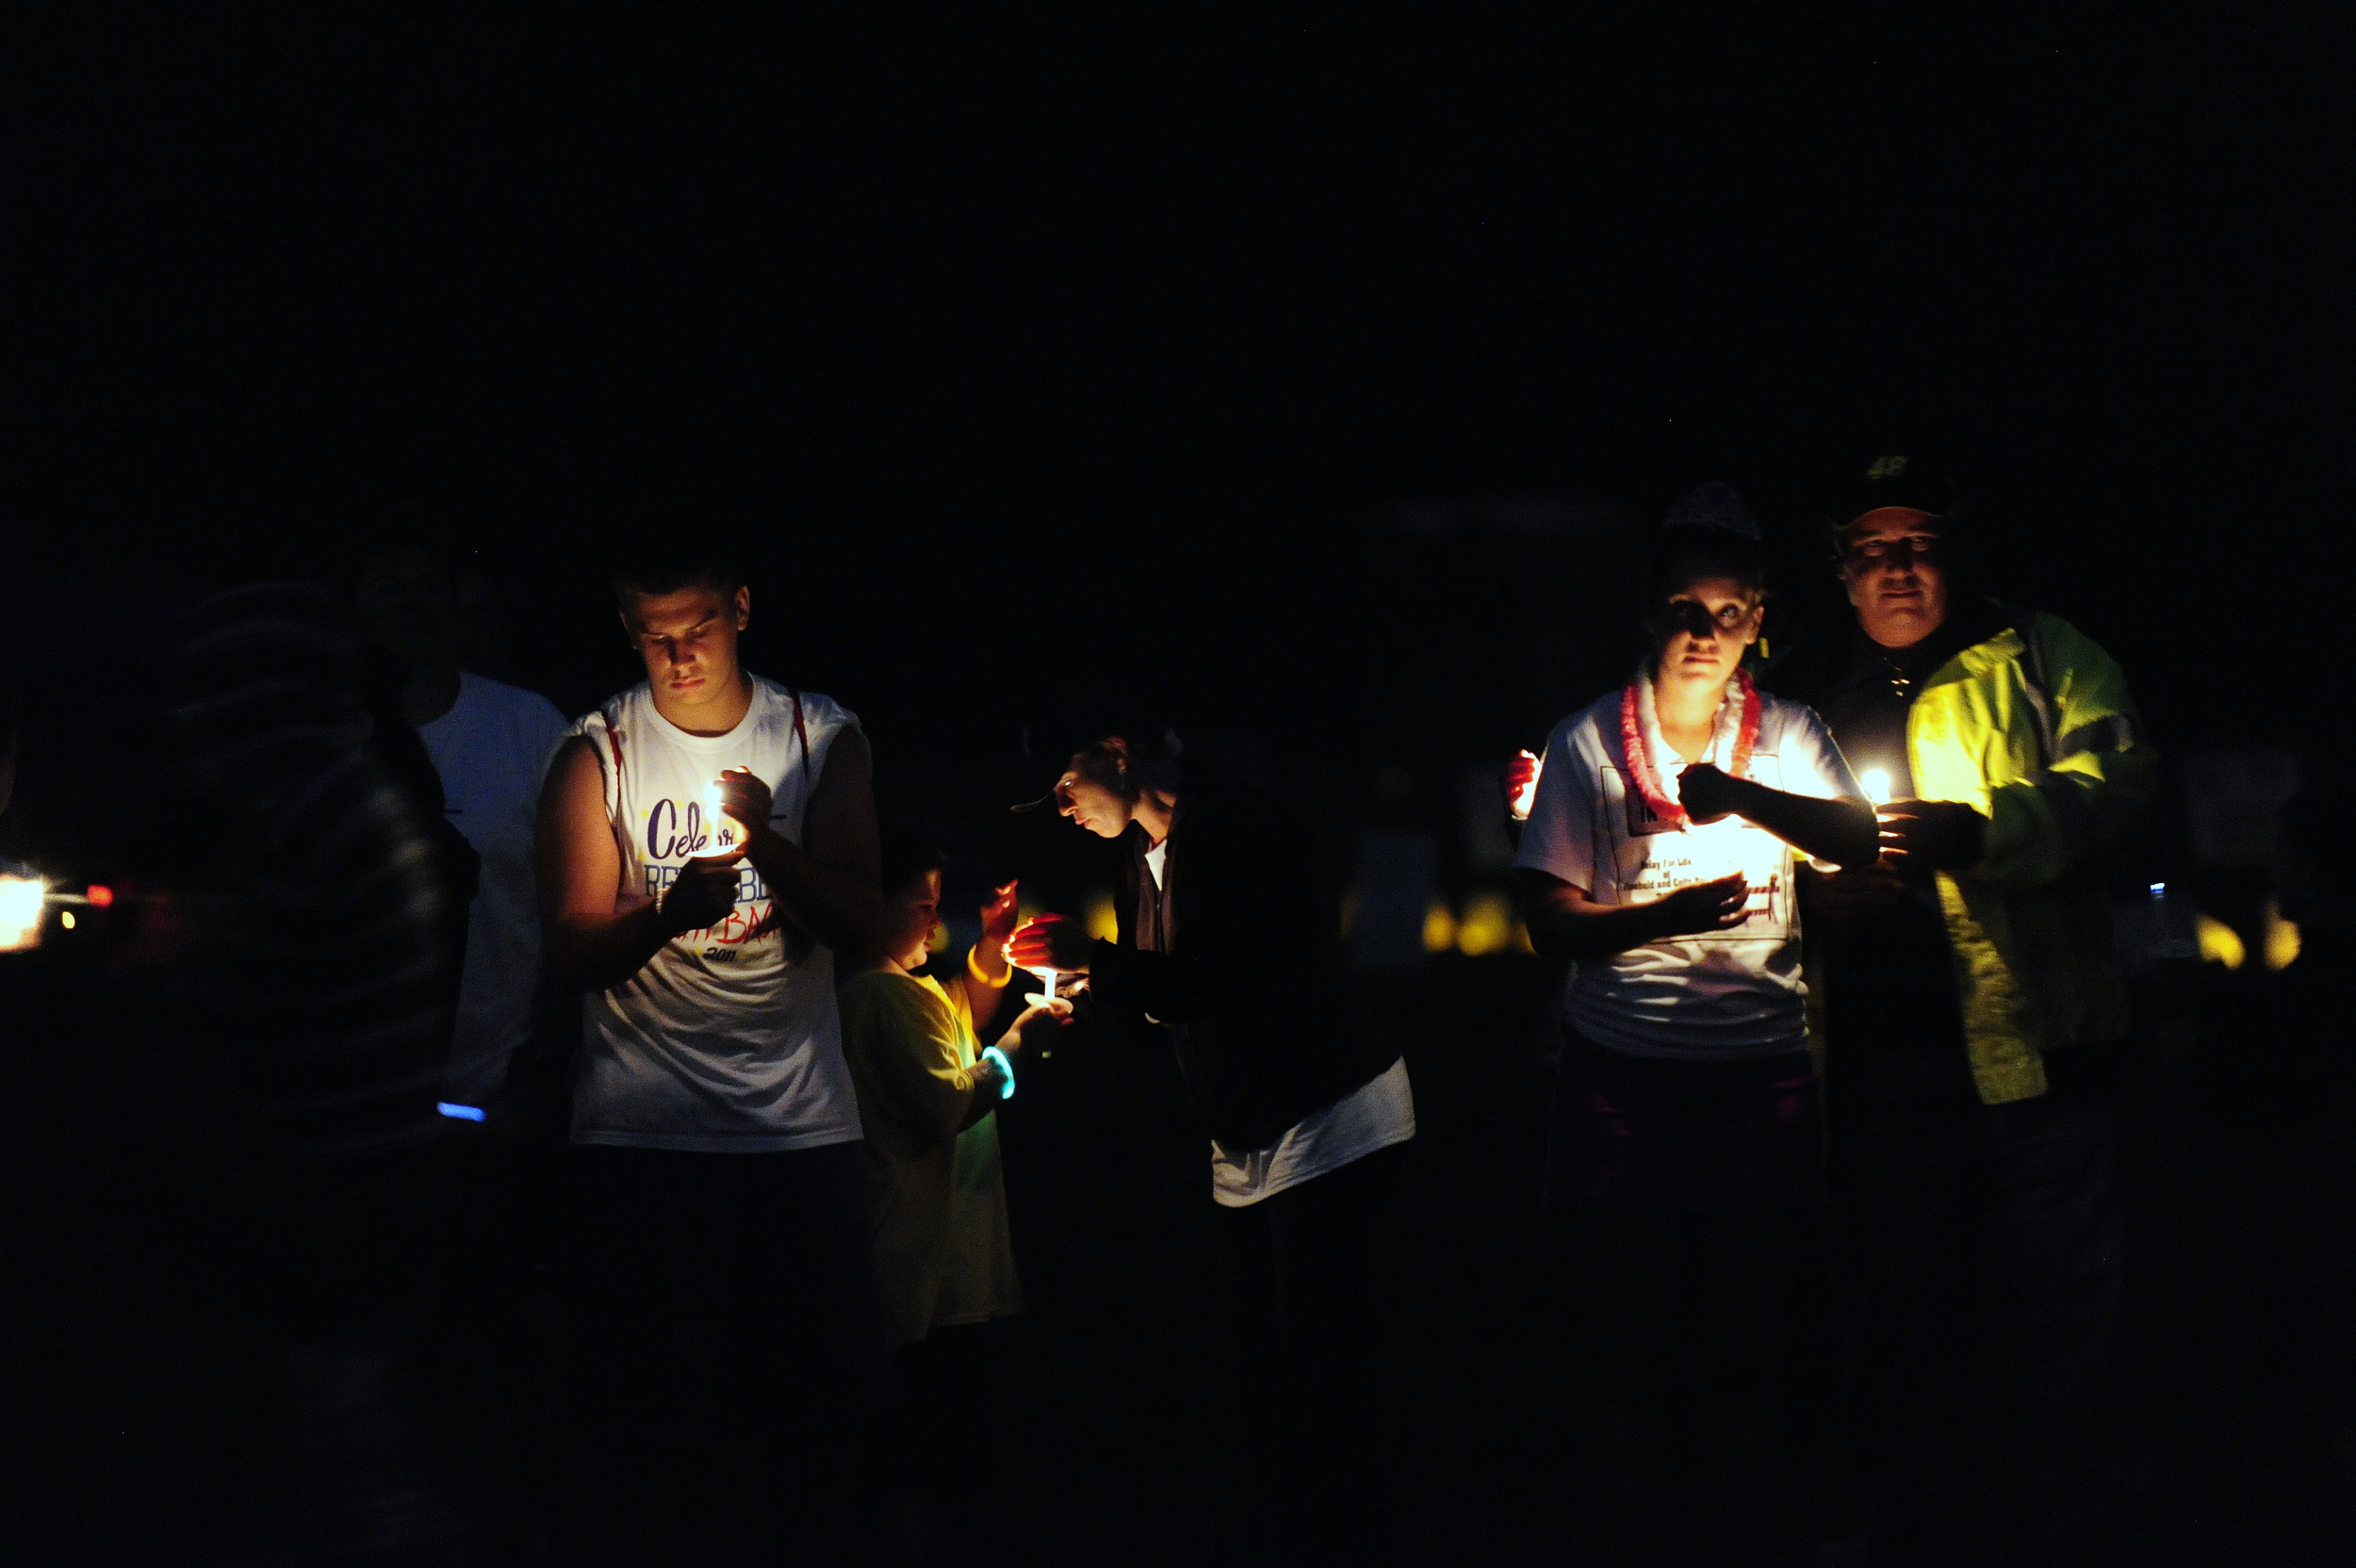 Lighting the Luminaria candles to commemorate those who lost their battles with cancer